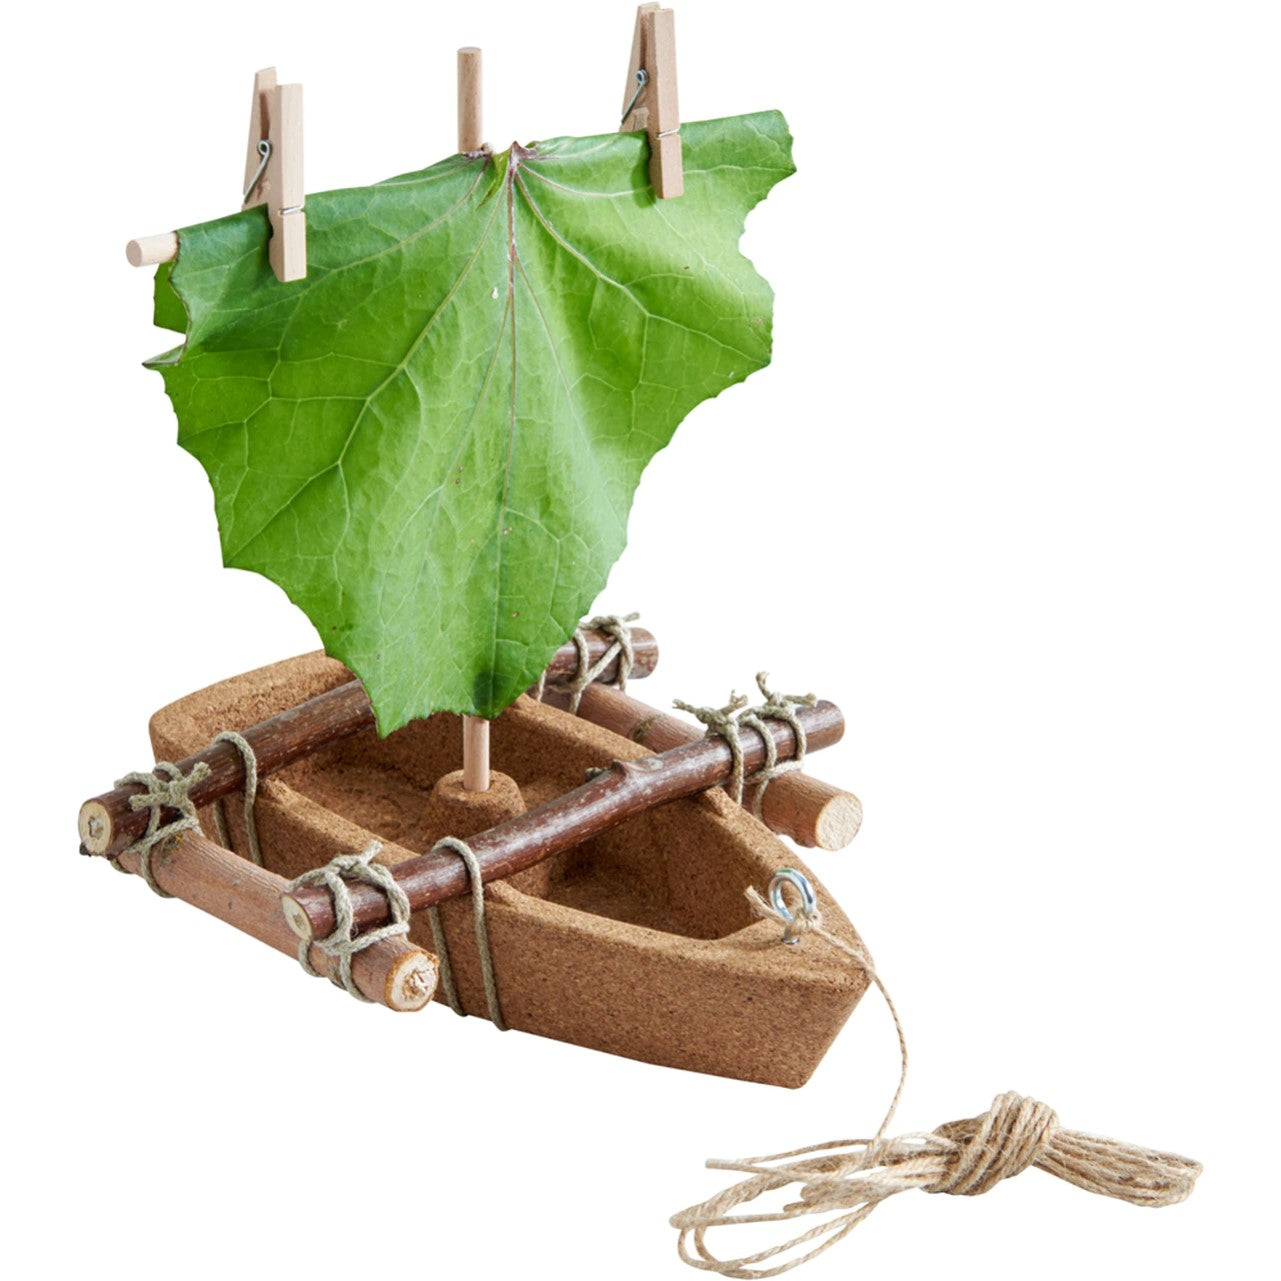 Terra Kids DIY Cork Boat Kit